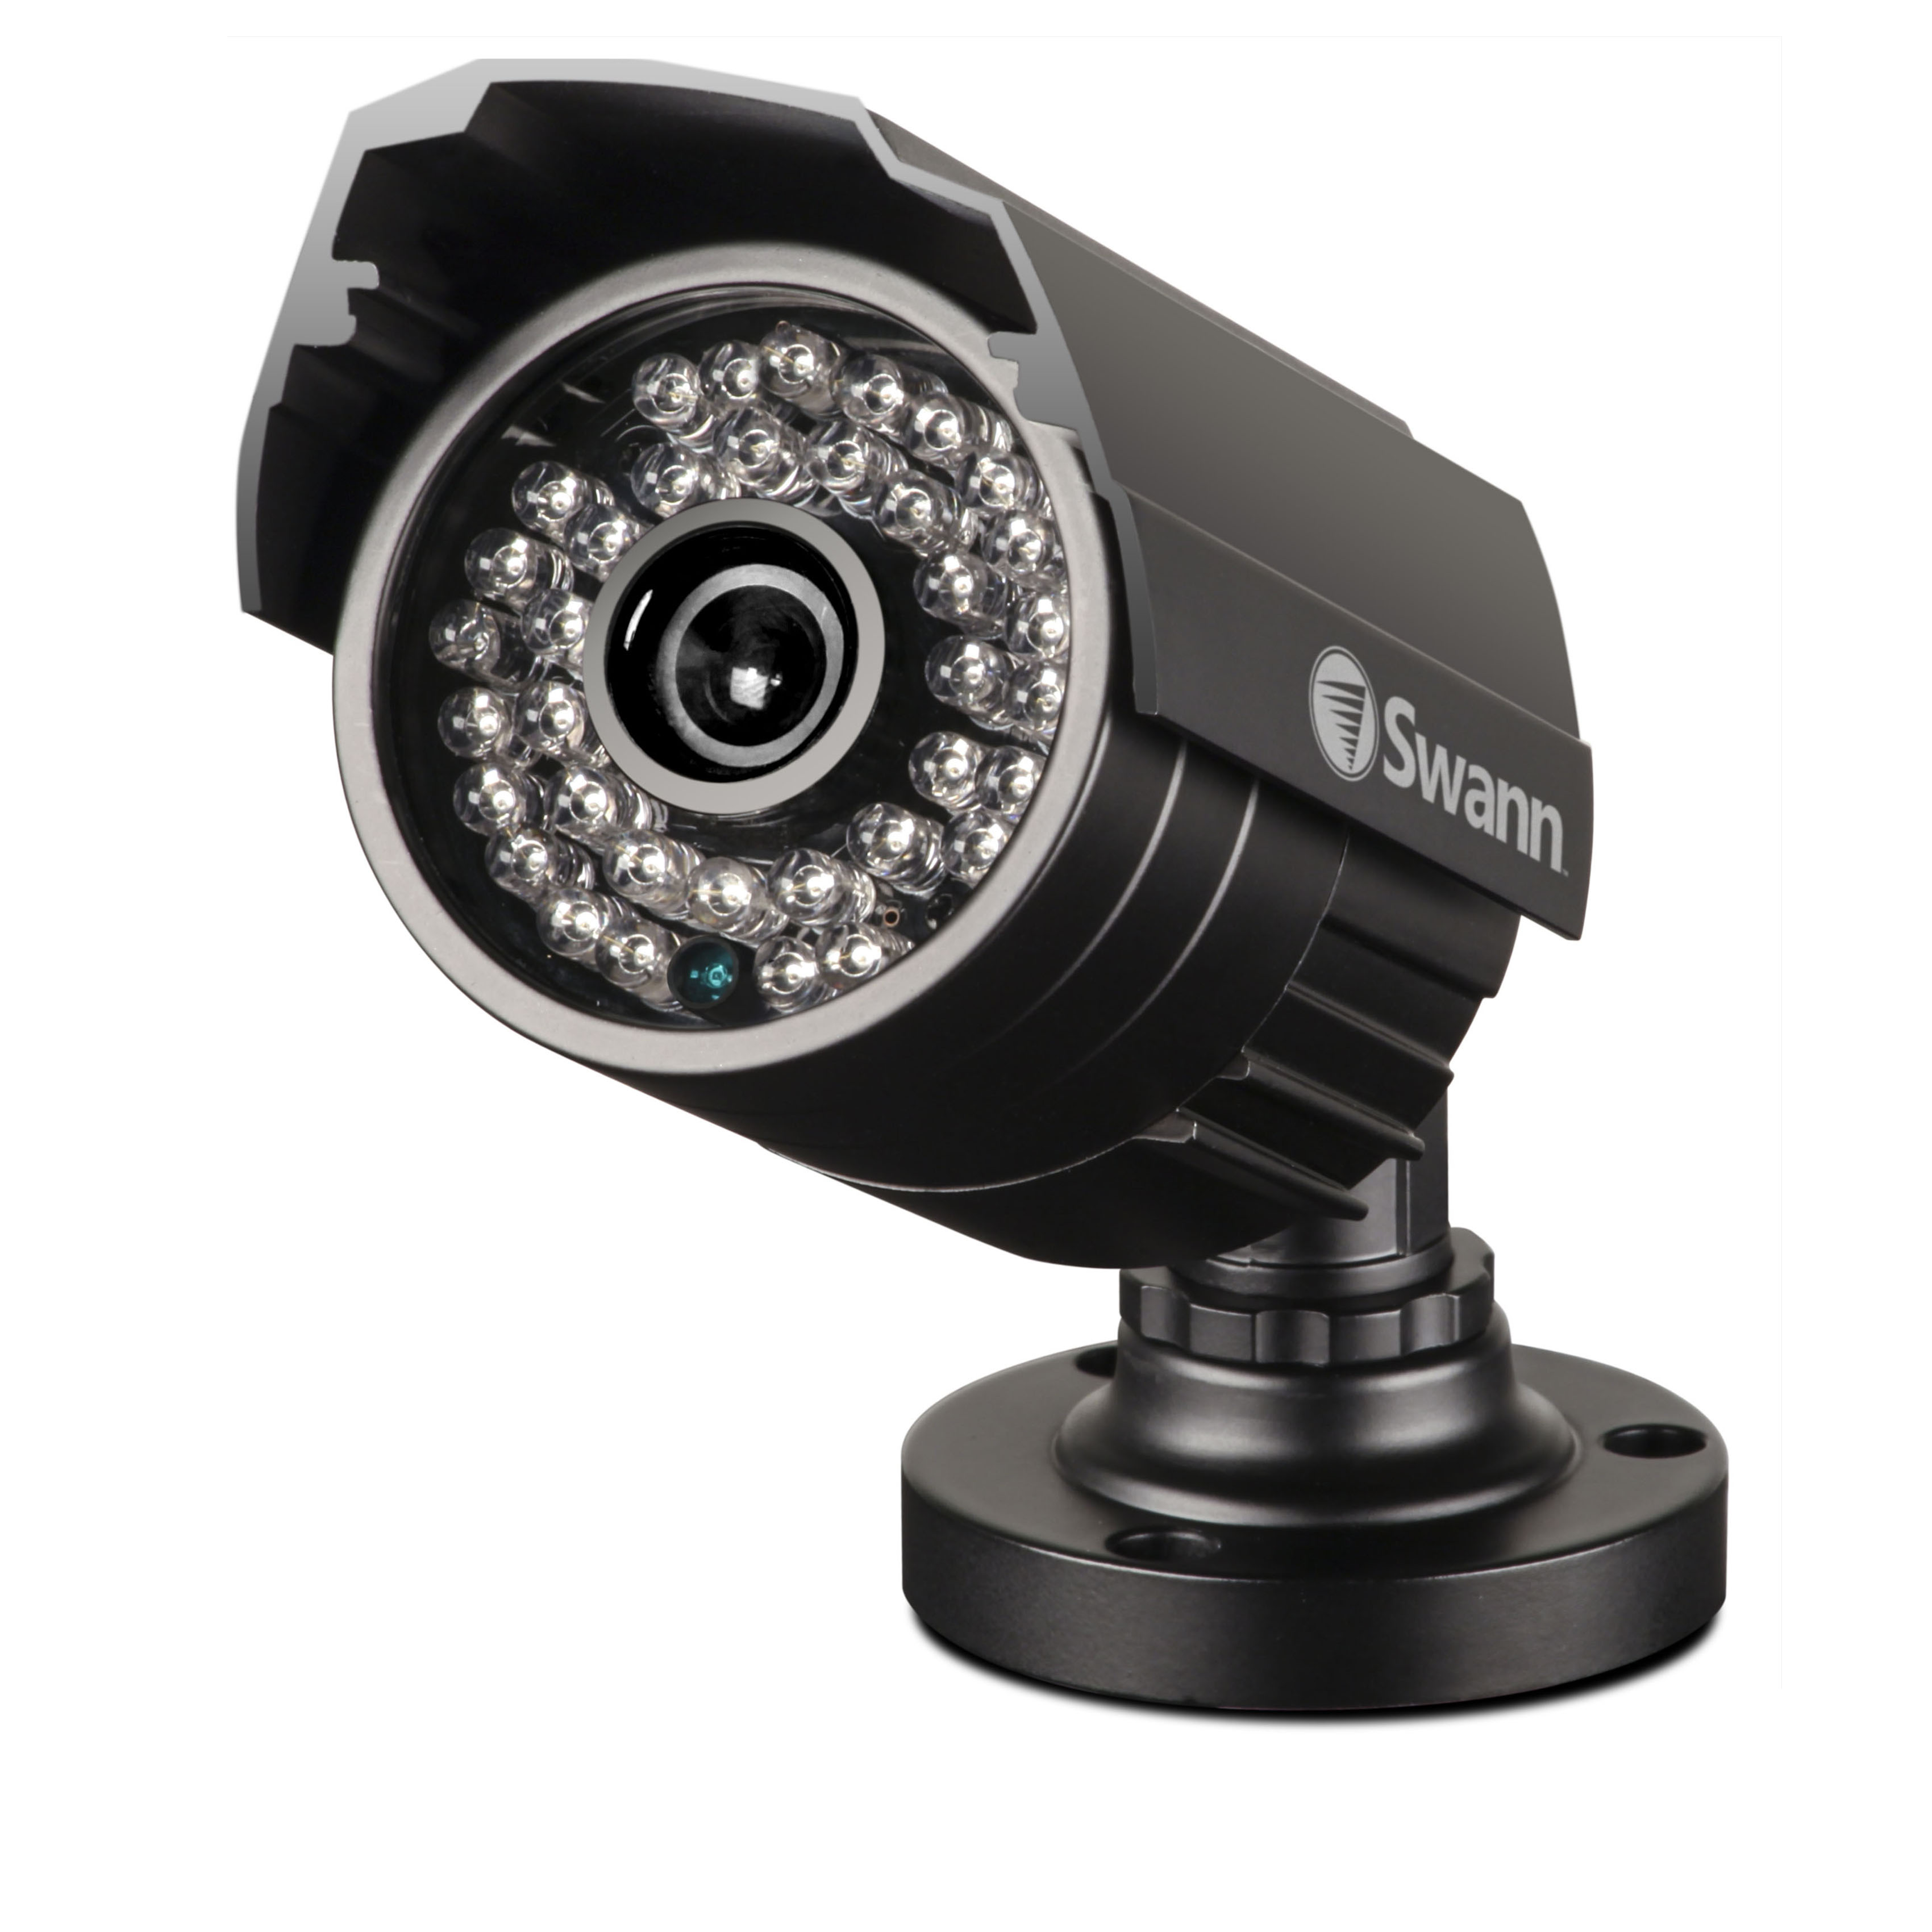 Security Cameras | Buy Online Today at Swann.com/au/